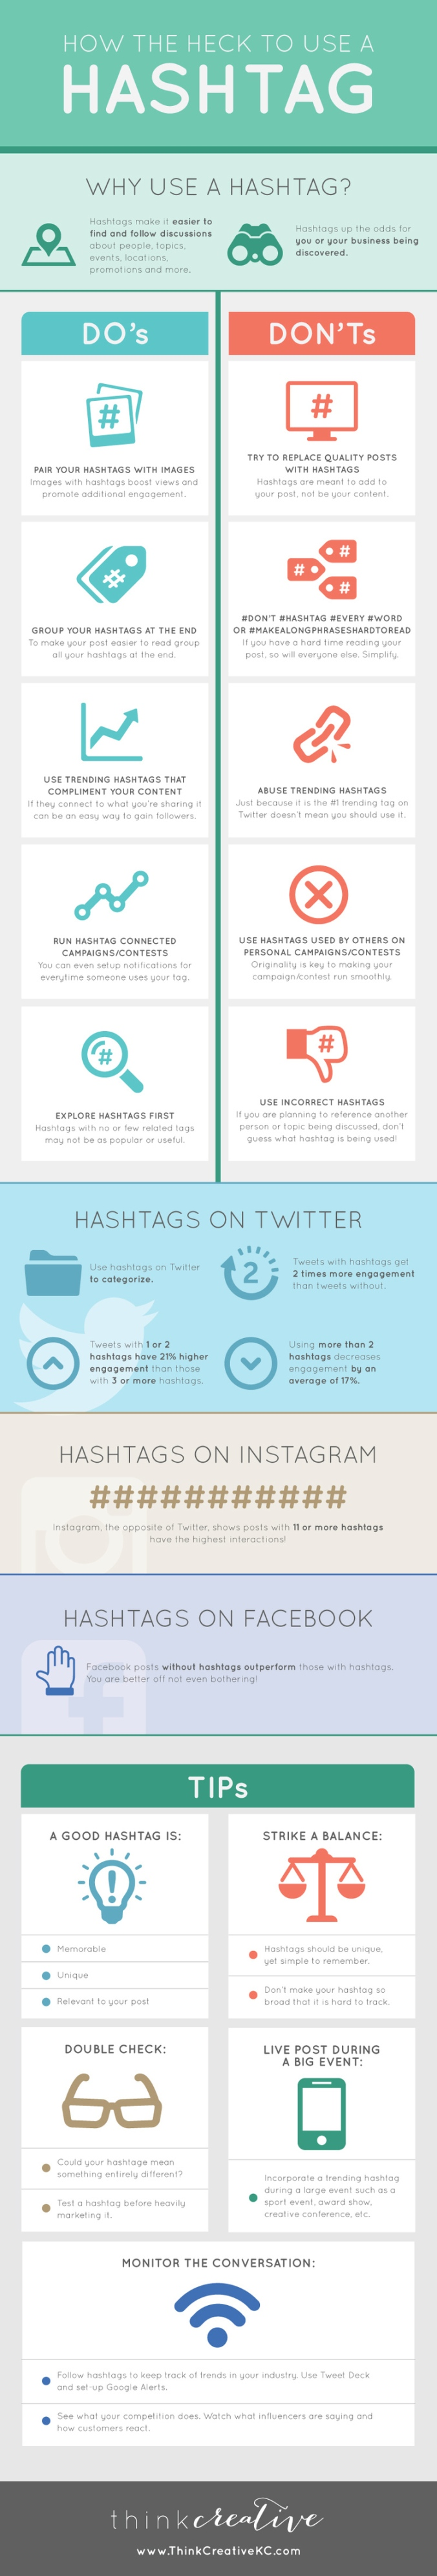 How+the+Heck+to+Use+a+Hashtag+#Infographic++-++Think+Creative